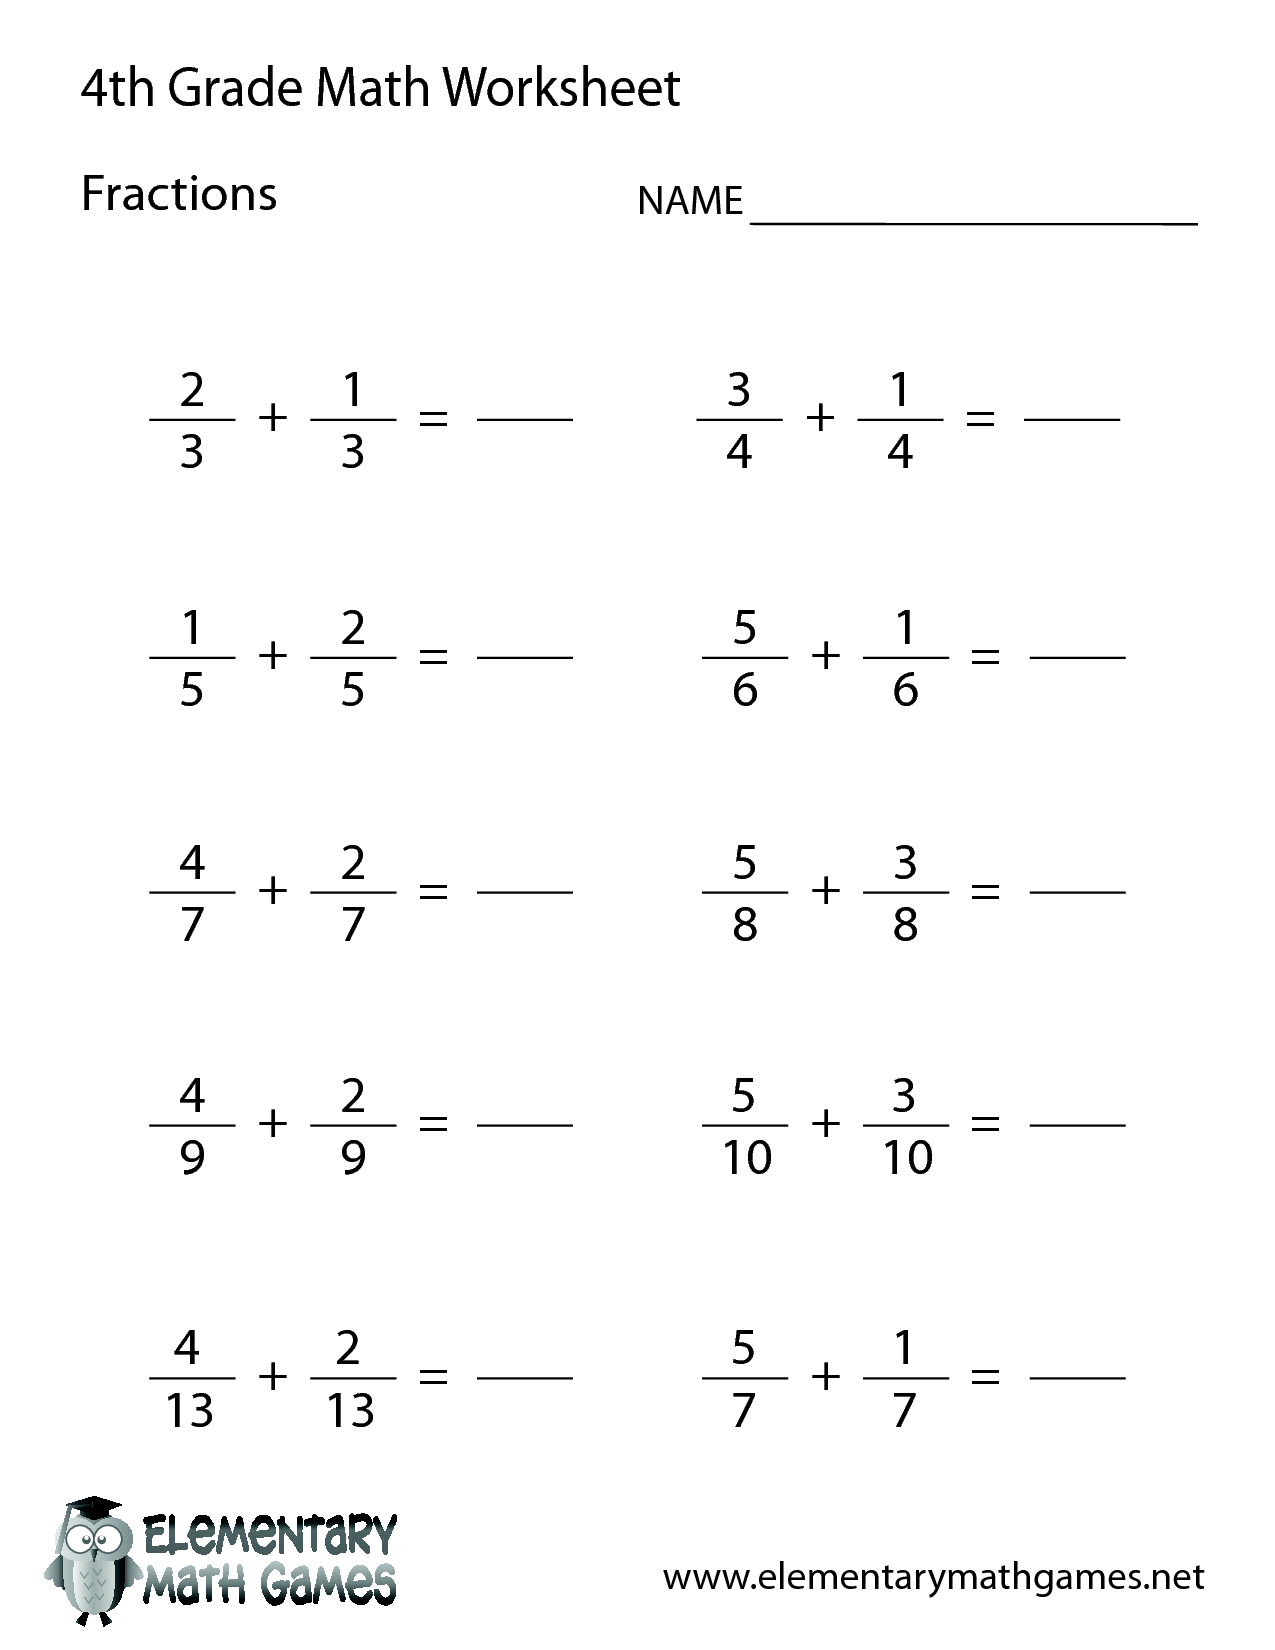 5 Best Images Of For 4th Grade Math Worksheets With Answer